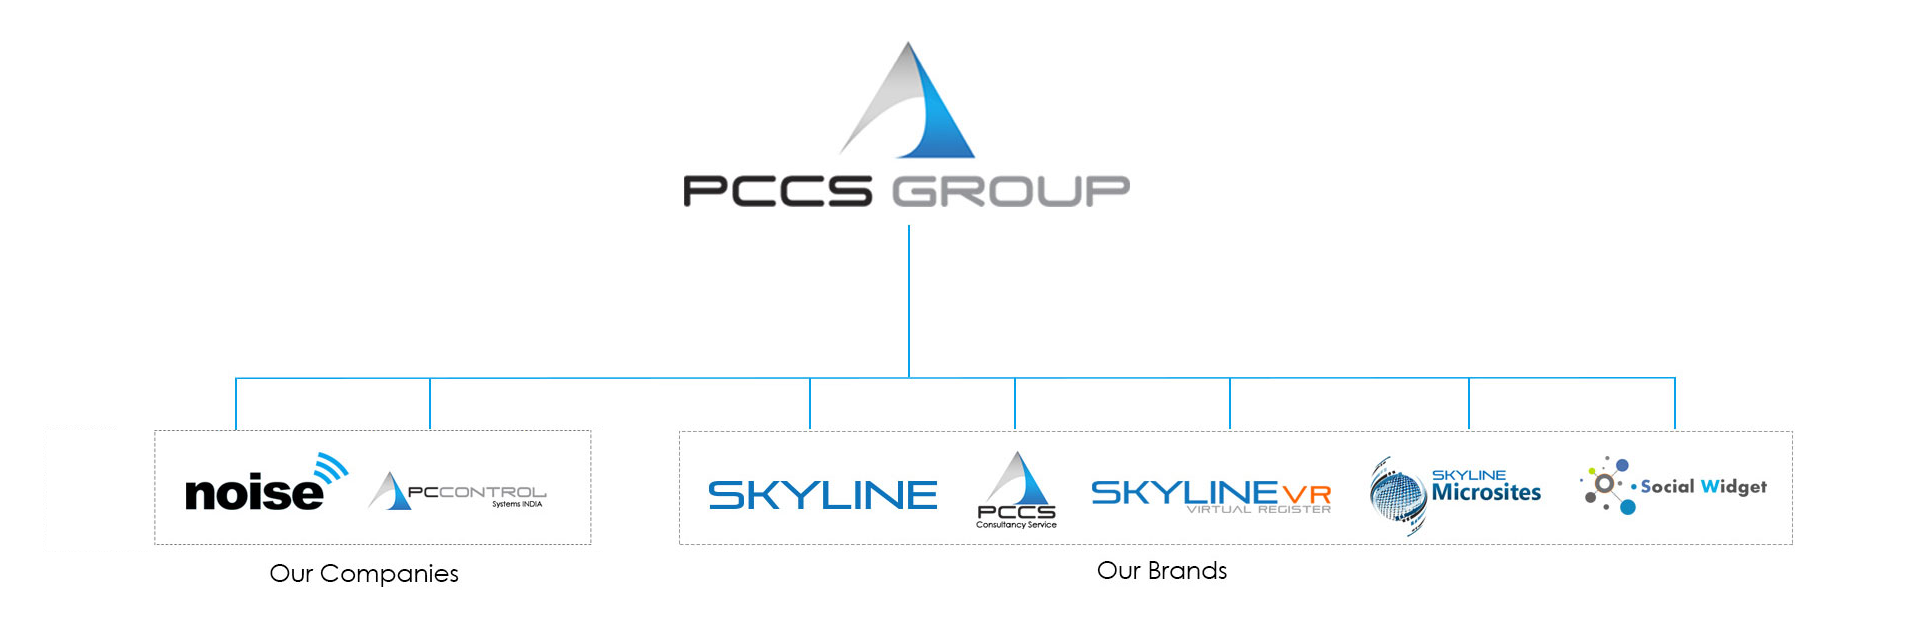 New Corporate Structure Pccs Group Optimized